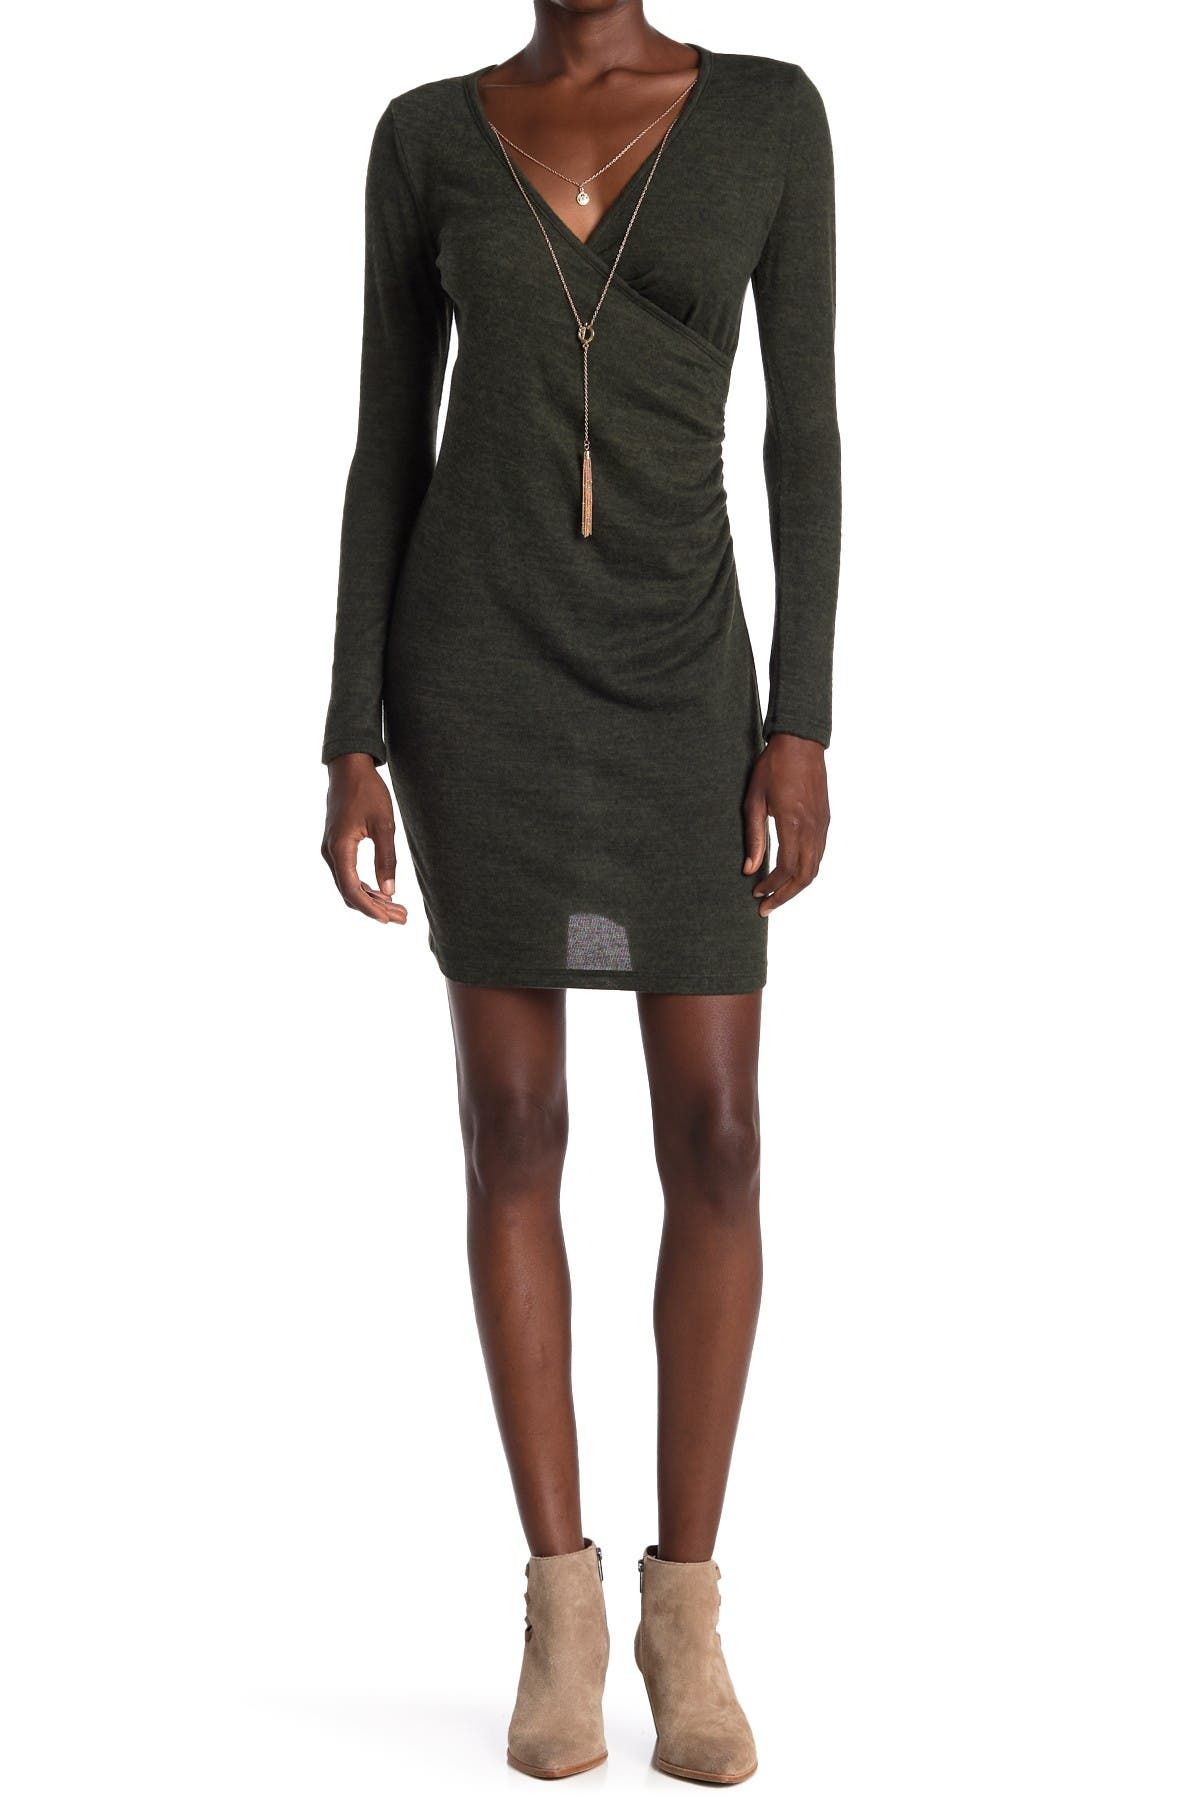 Image of BAILEY BLUE Surplice Attached Chain Necklace Mini Dress